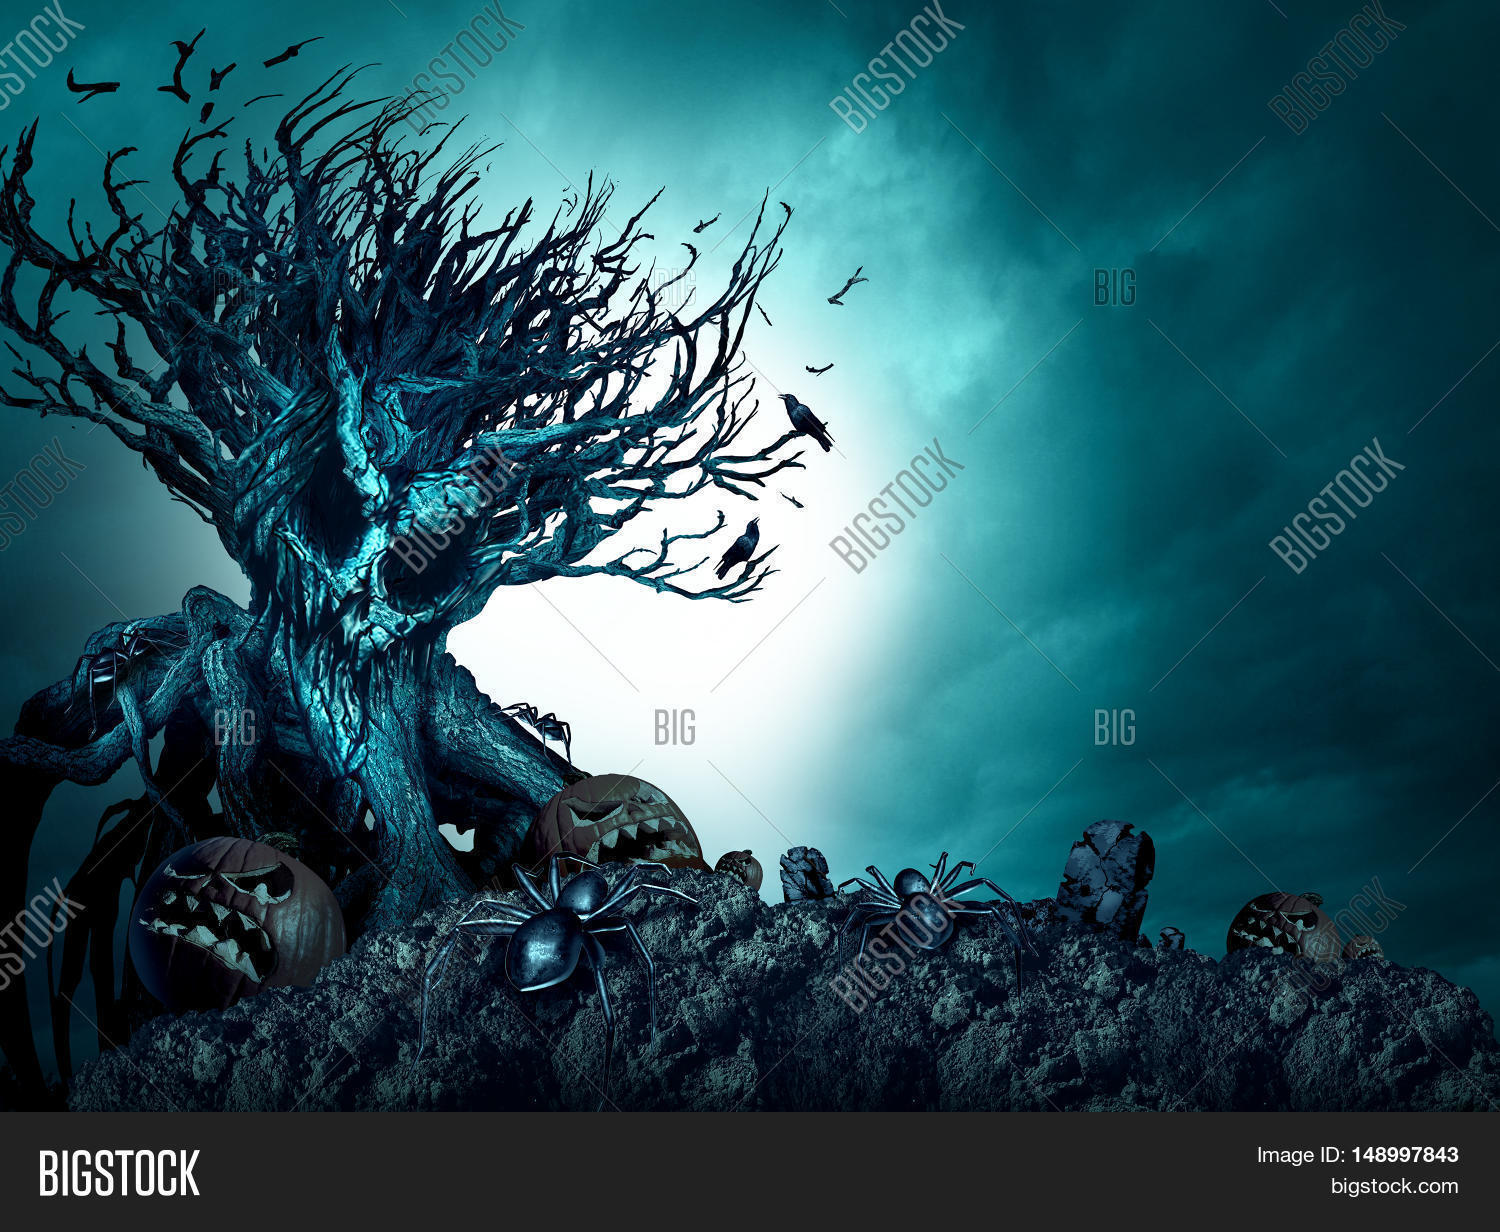 Fall Graveyard Cemetery Wallpaper Halloween Creepy Background Haunted Image Amp Photo Bigstock